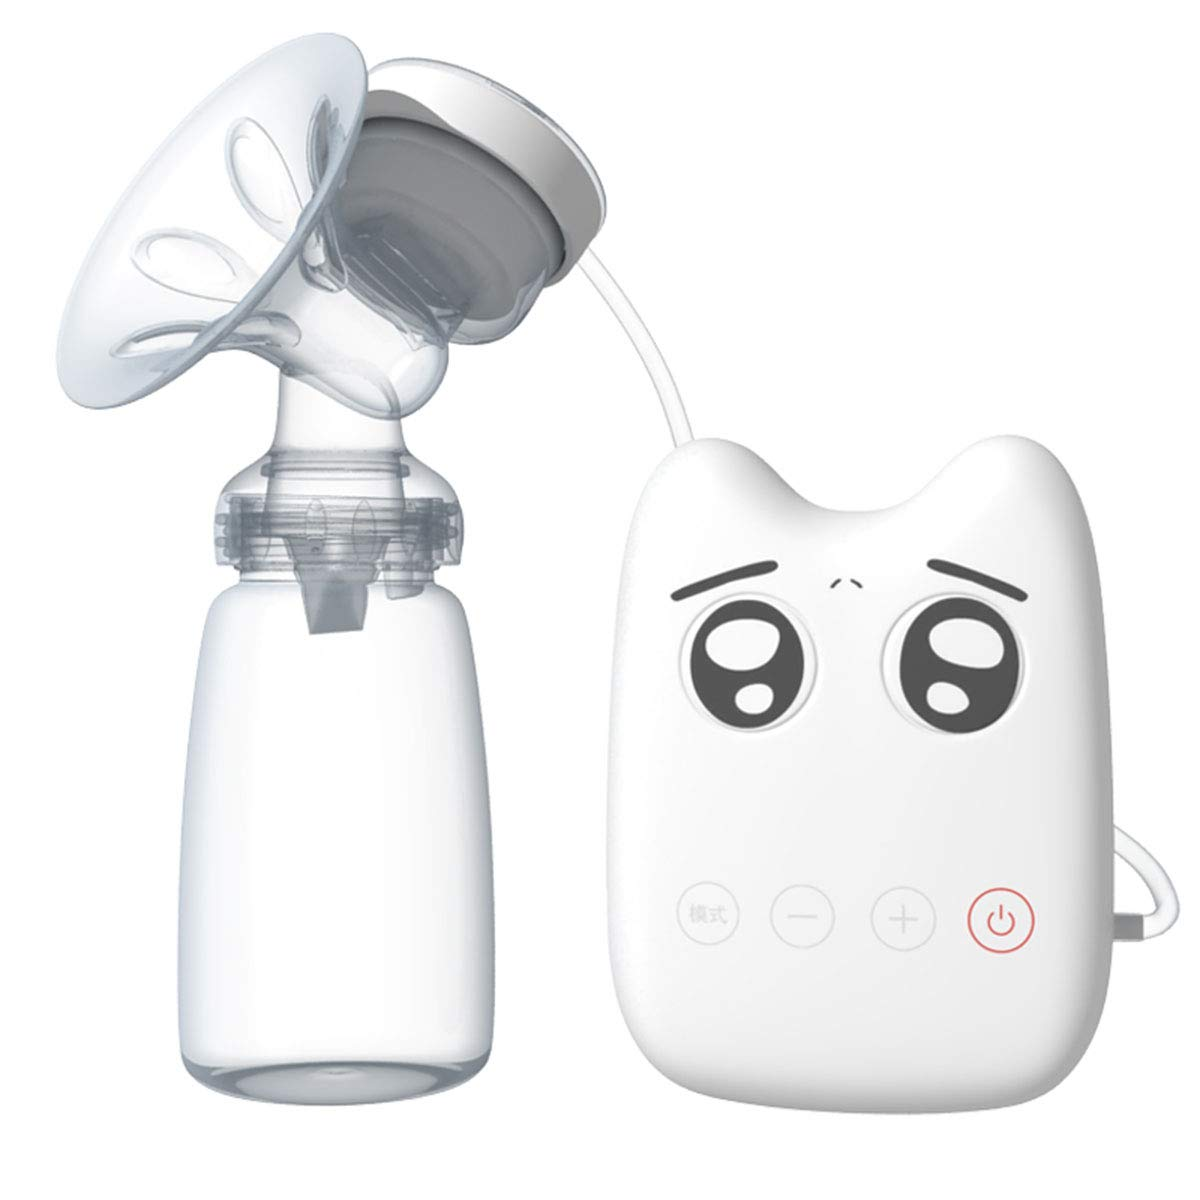 GXMTB Electric Suction Device//Maternal Breast Milk Milking Device//Automatic Massage Postpartum Pull-Out Milk Breast Pump